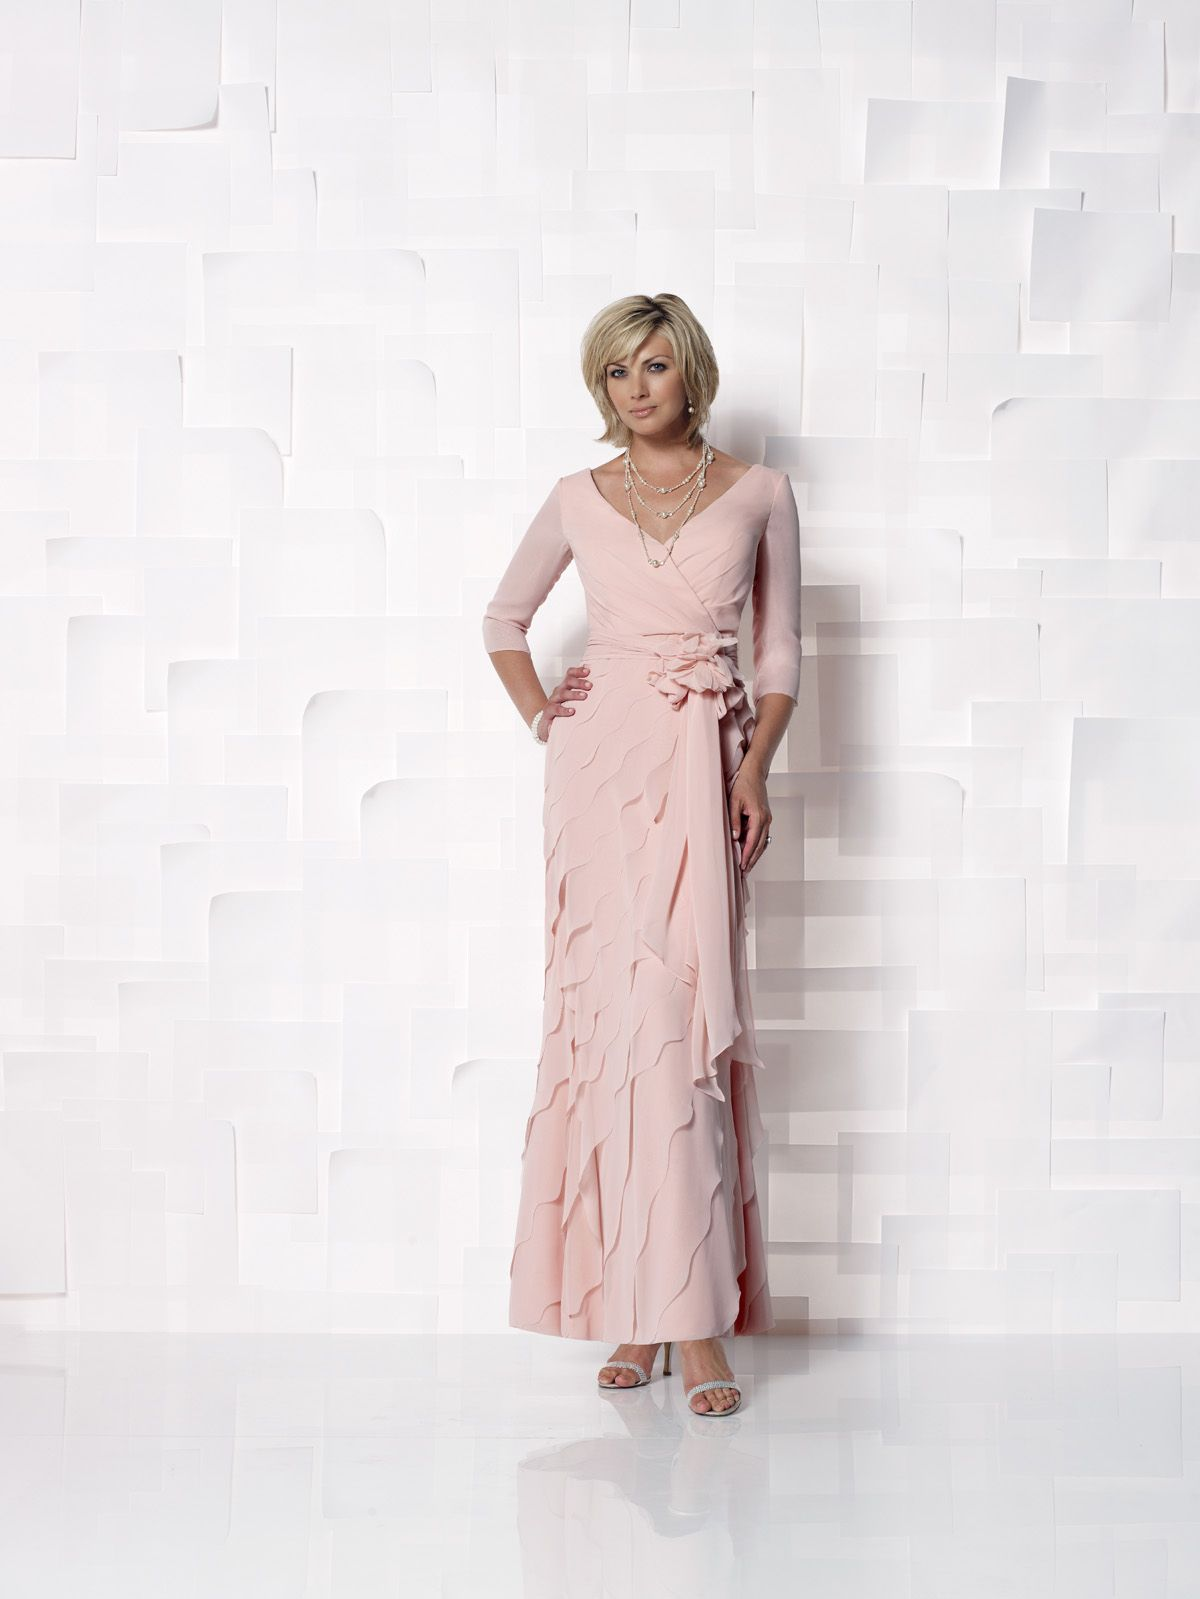 Wedding dresses for mother of the bride  Cameron Blake  Style No   Cameron Blake  Mothers of the